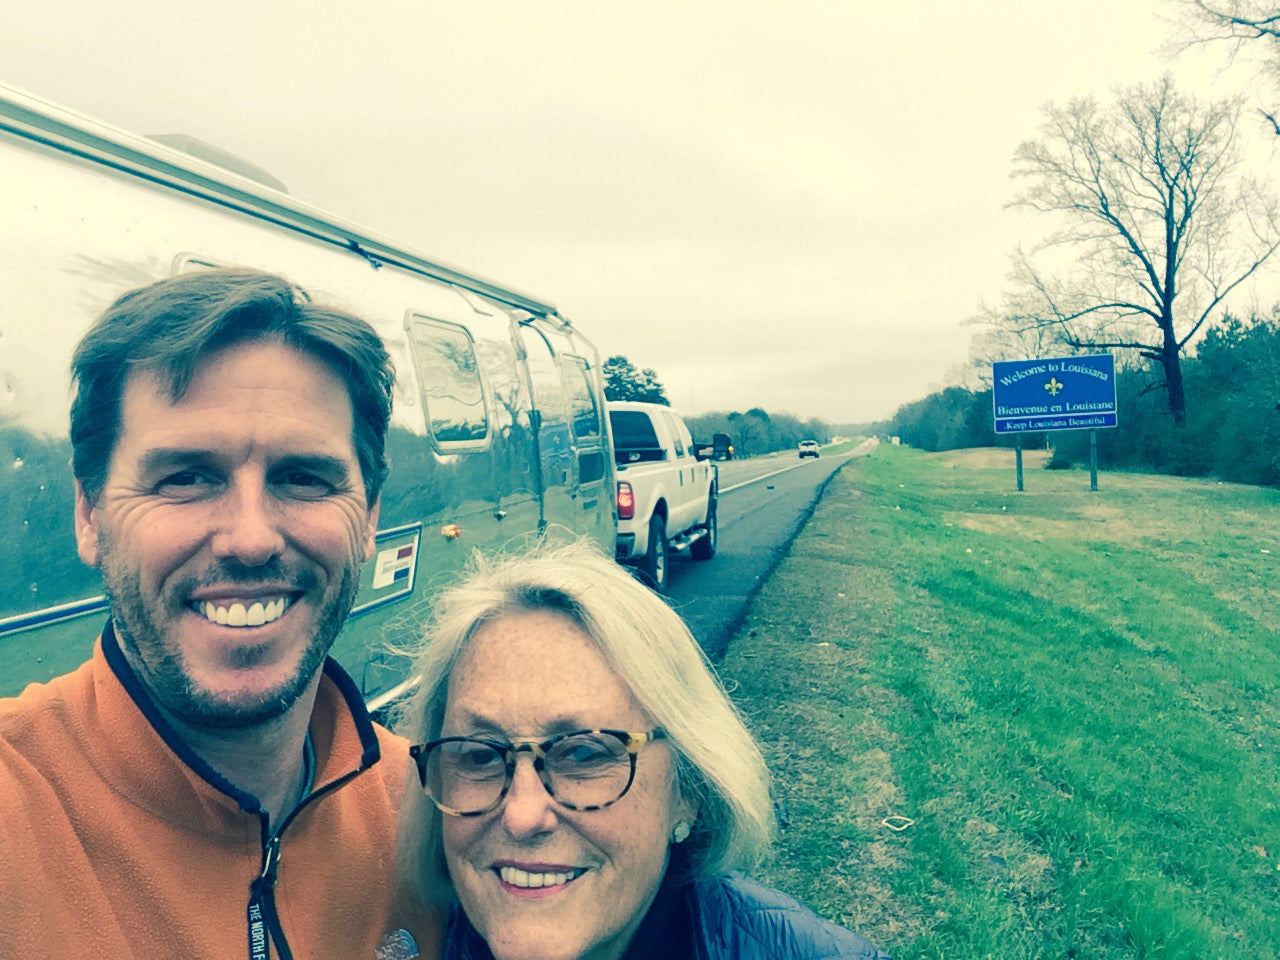 Josh Needleman and Mary Ella Gabler pose on the side of the highway with the Airstream and a Welcome to Louisiana sign in the background